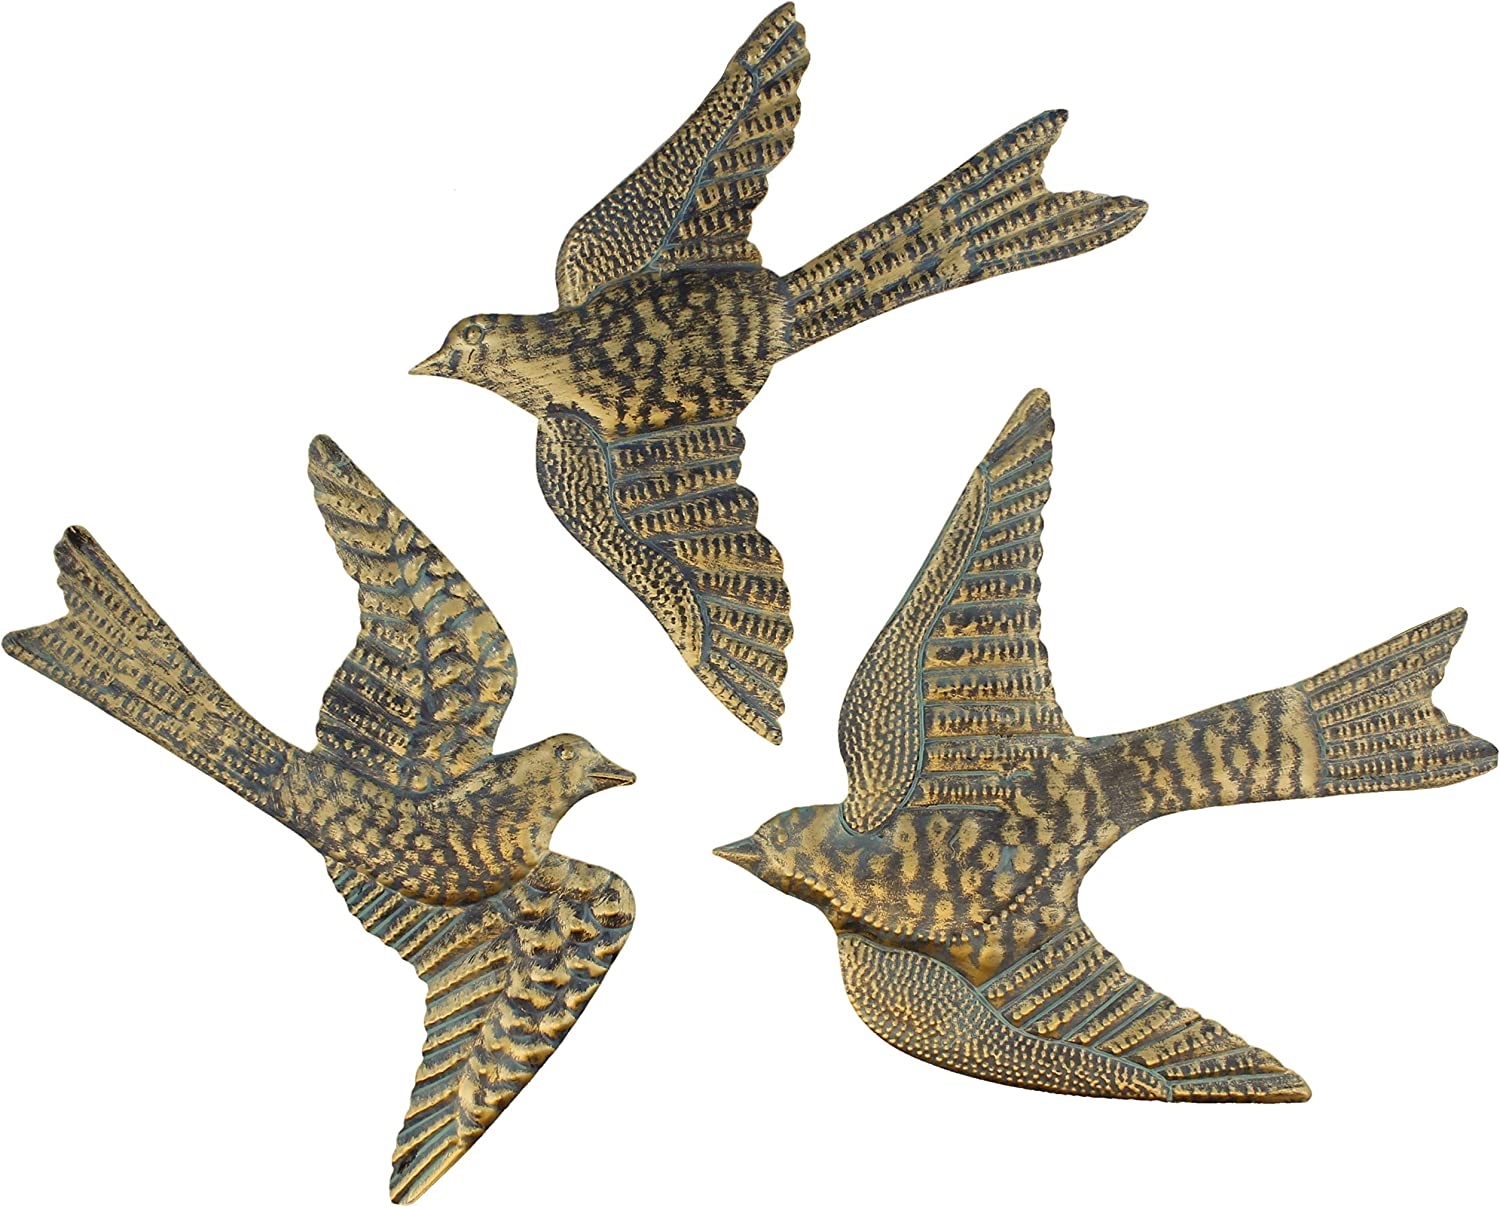 "Large 14"" Metal Birds Decorative Wall/Fence Plaques Brass Verdigris Garden Art Sculptures - Set of 3"